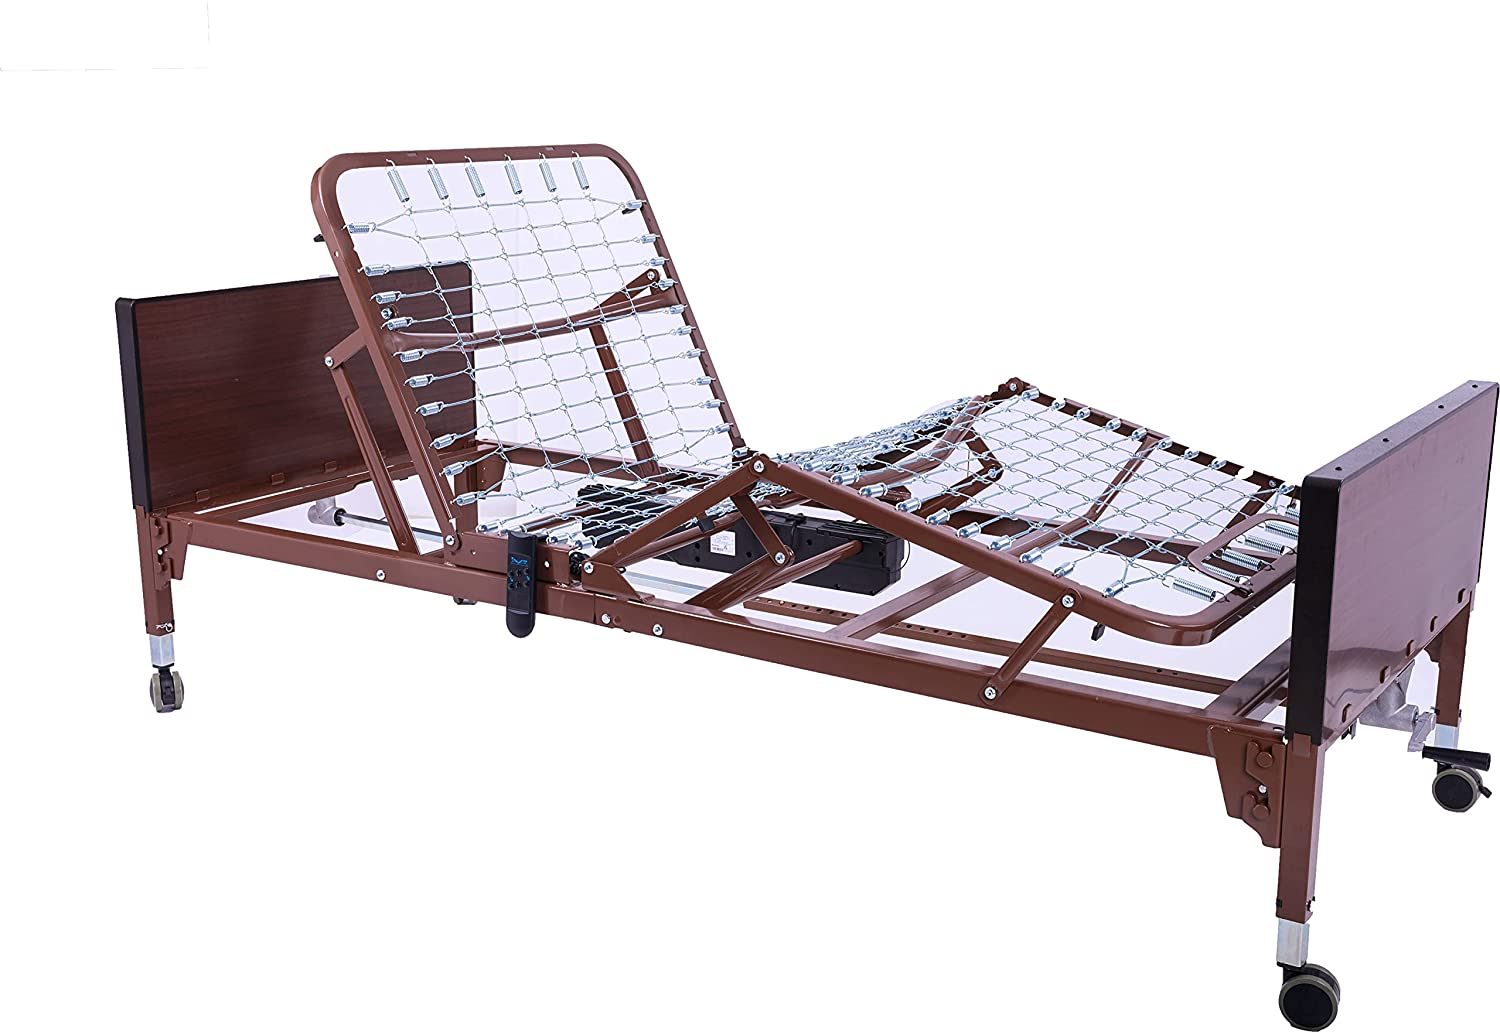 Invacare Value Care Homecare Bed | Semi-Electric Hospital Bed for Home Use